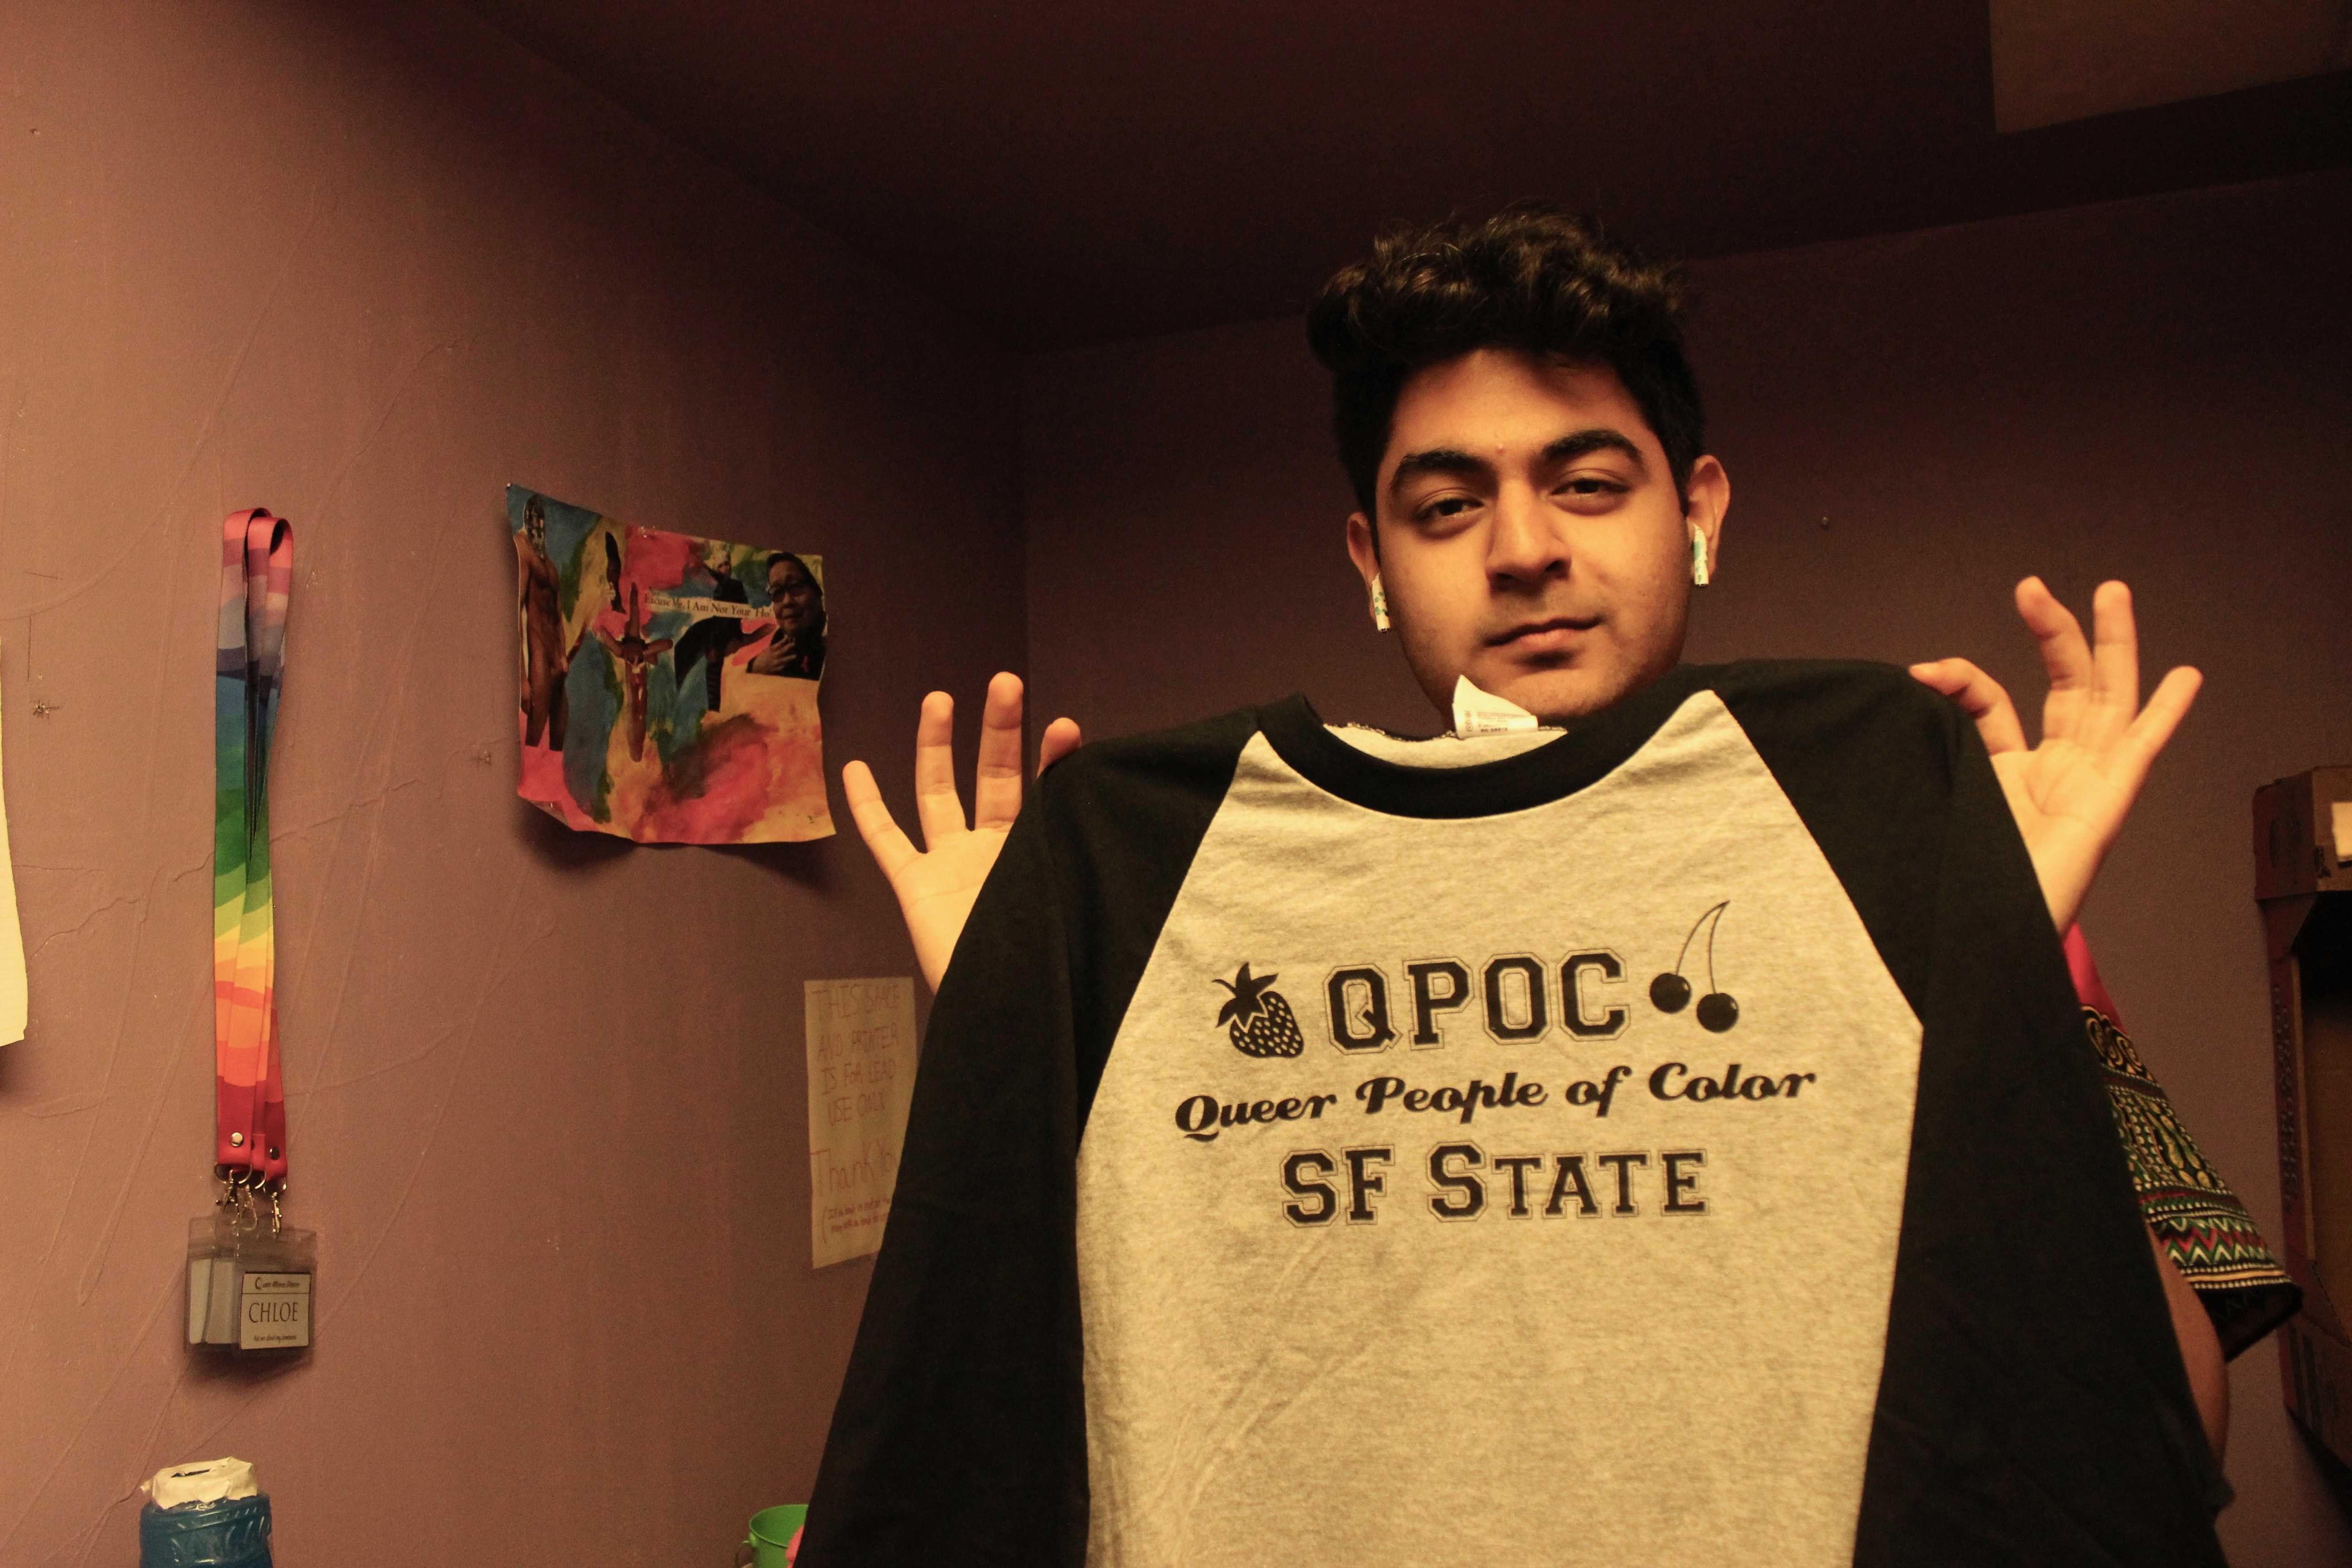 Ashesh Arora, the Director of Events for the Queer Alliance, holds the new shirt for Queer People of Color.